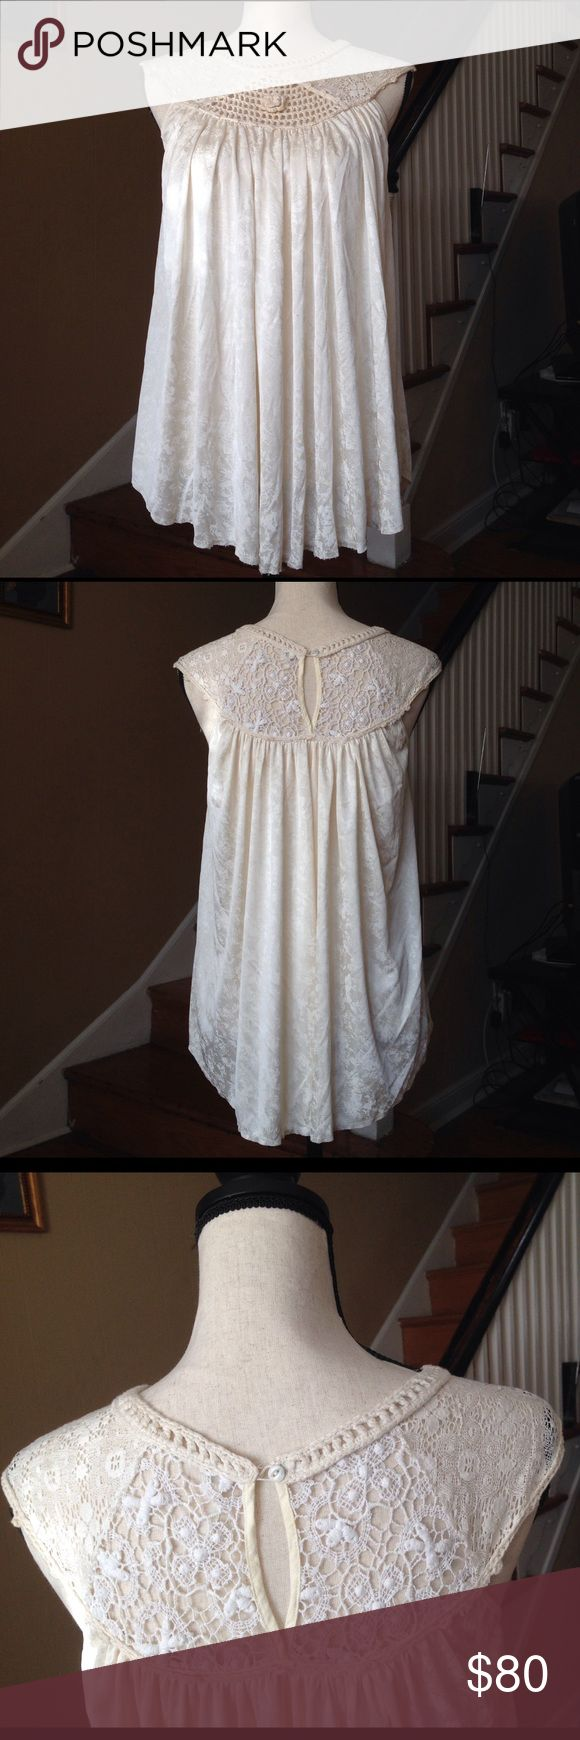 Free People Women's Top Crochet Sleeveless Size XS Free People top beige used condition,some signs of use and two stains at the front,Size XS. Free People Tops Tank Tops